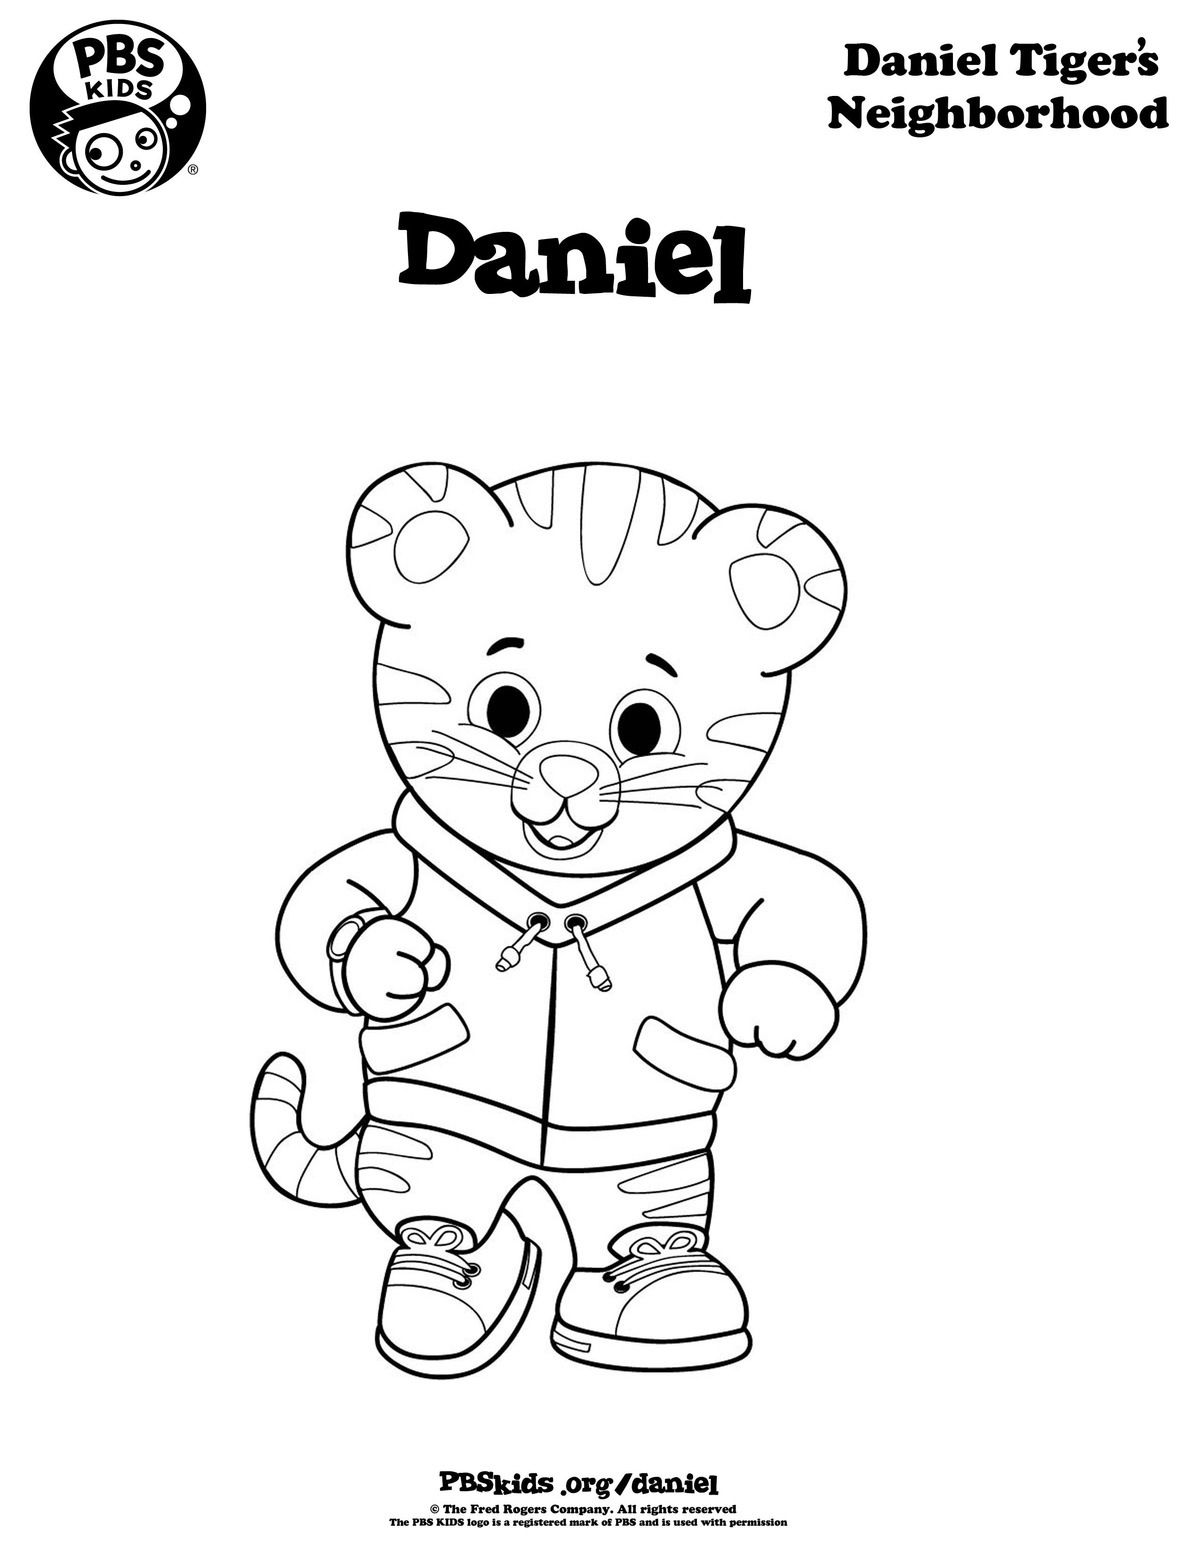 Daniel Tiger coloring page. Coloring pages are a great